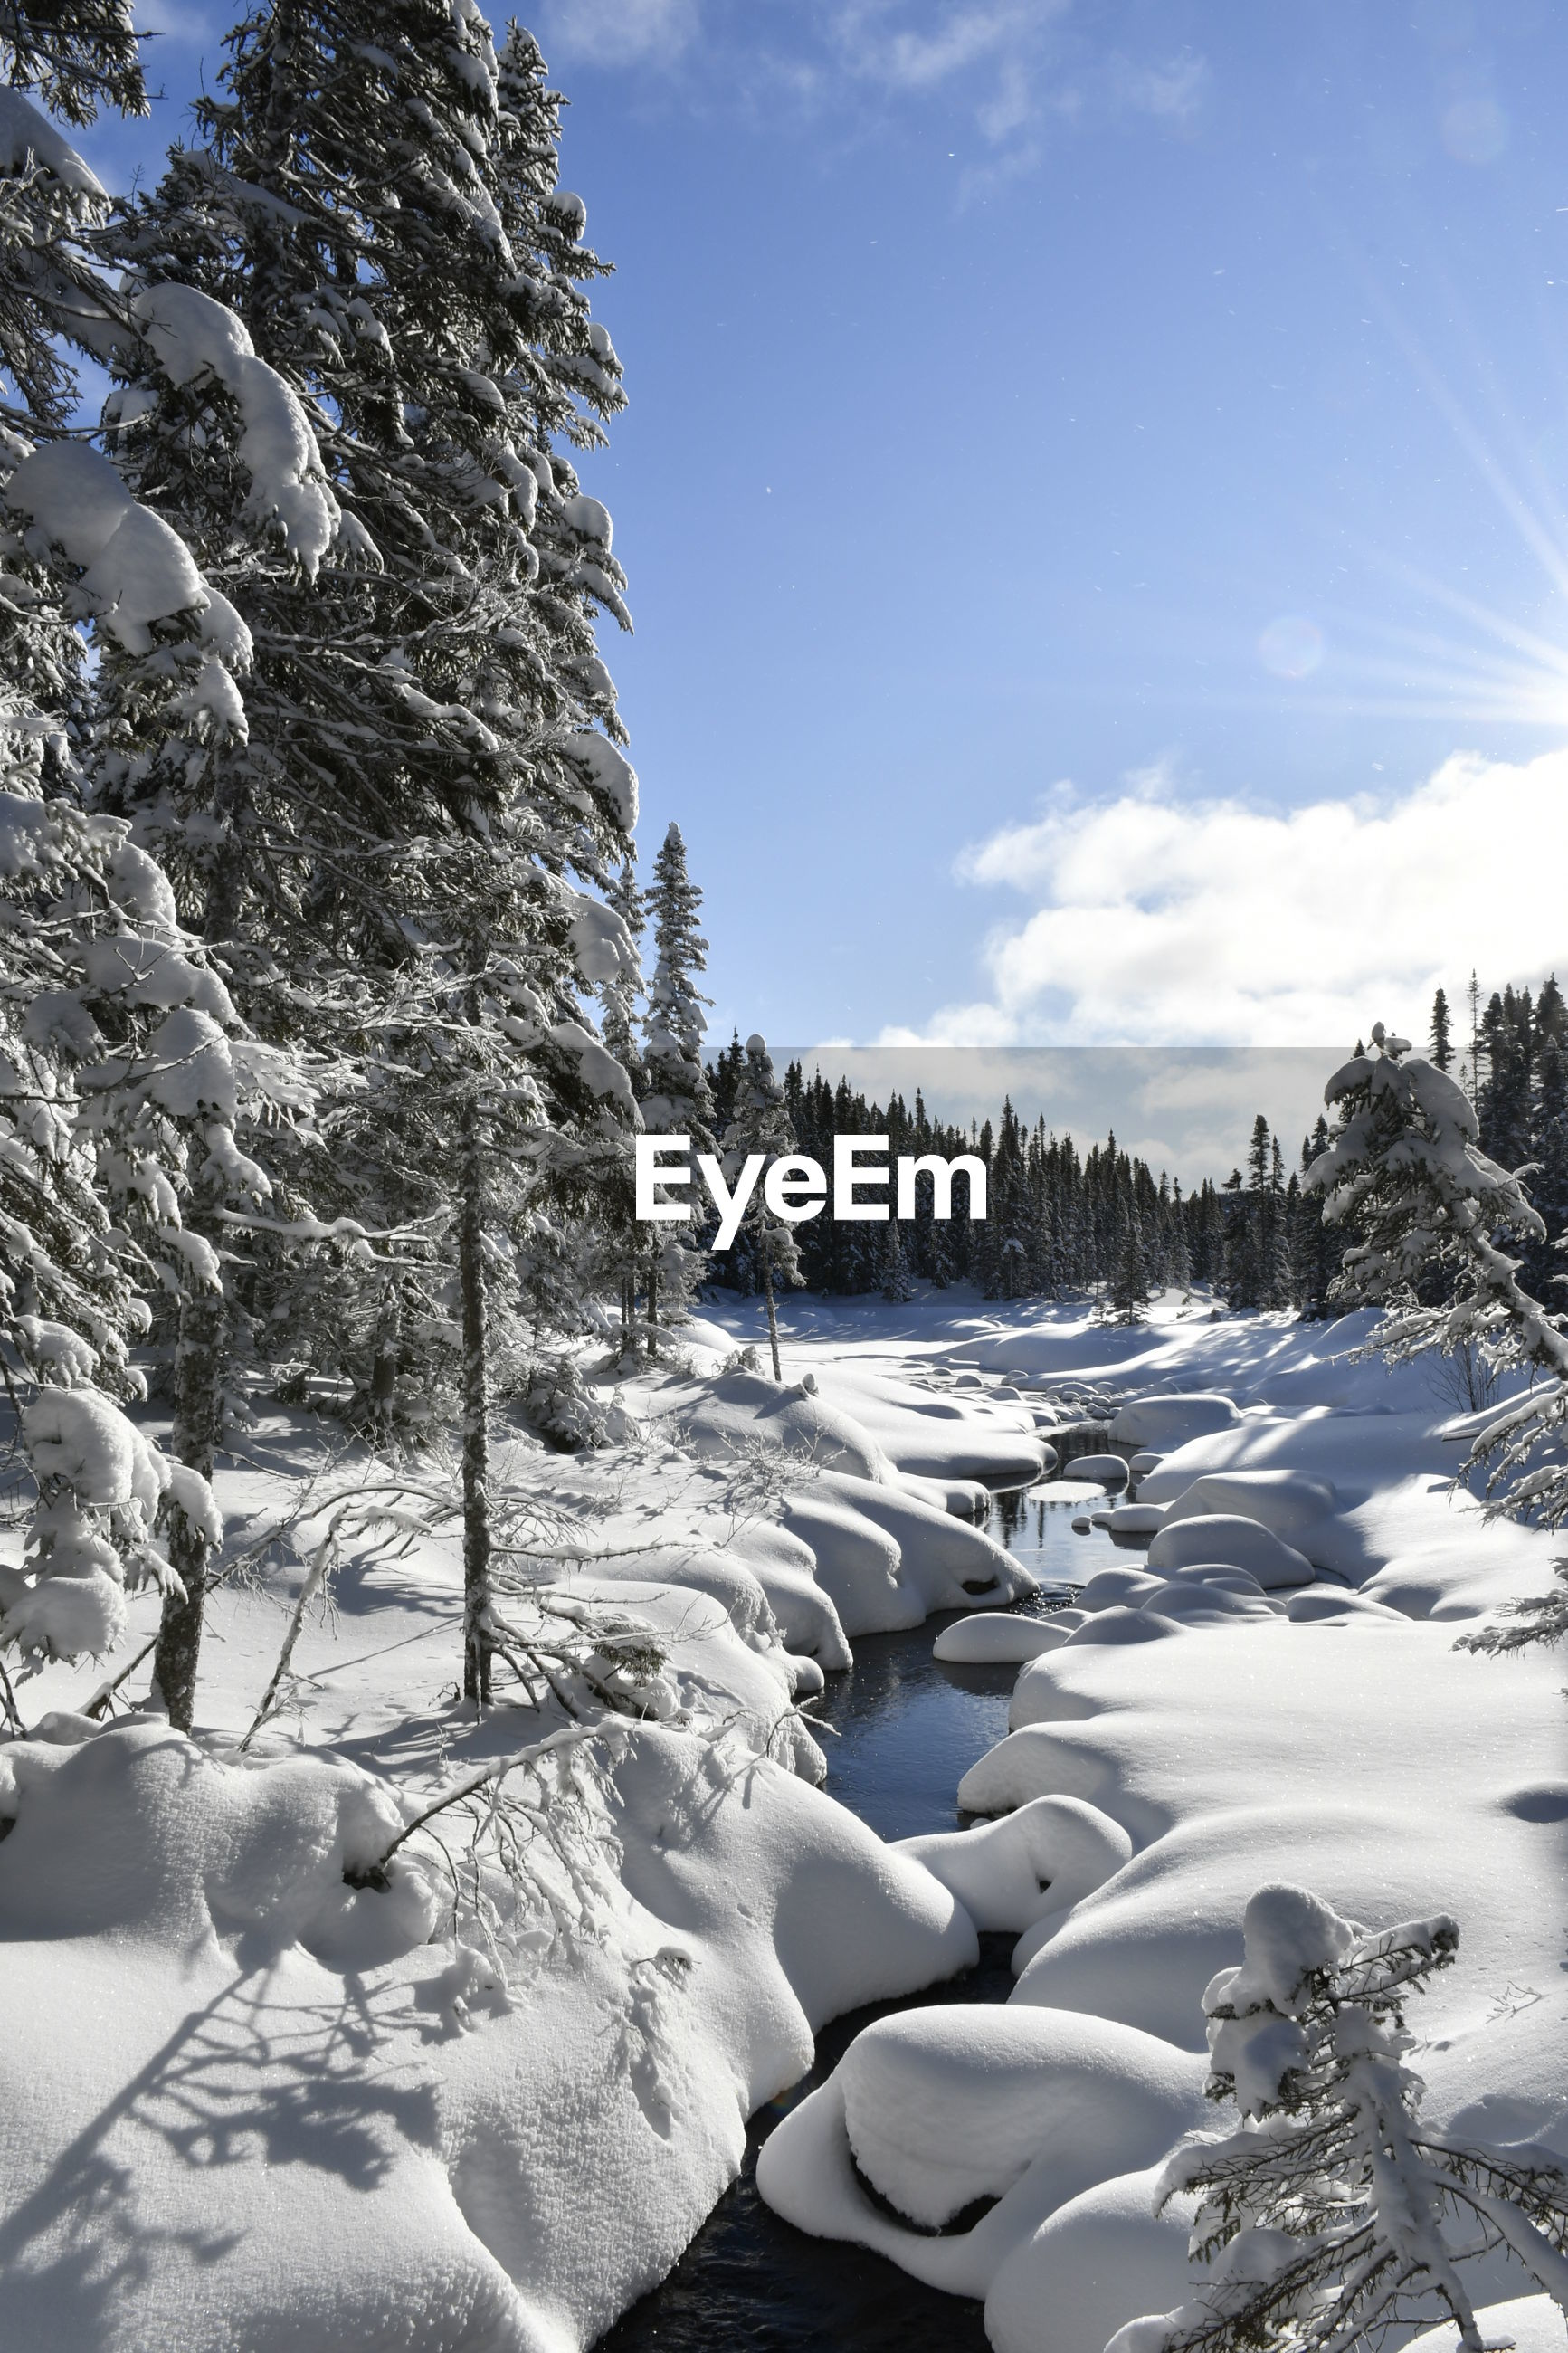 VIEW OF SNOW COVERED LAND AGAINST SKY